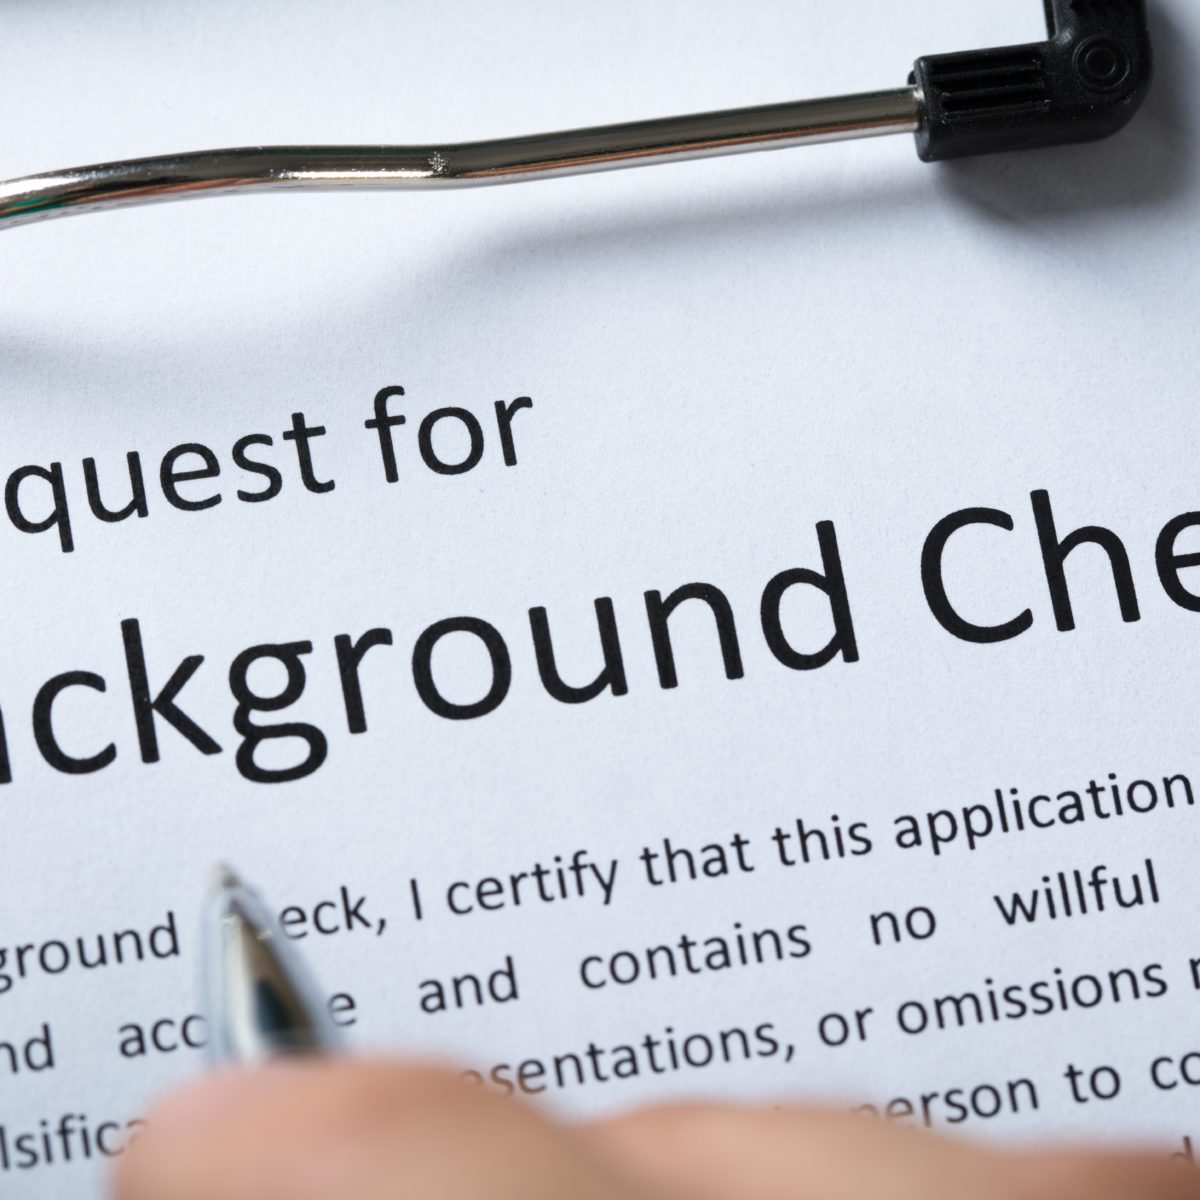 How Long Does a Background Check Take?